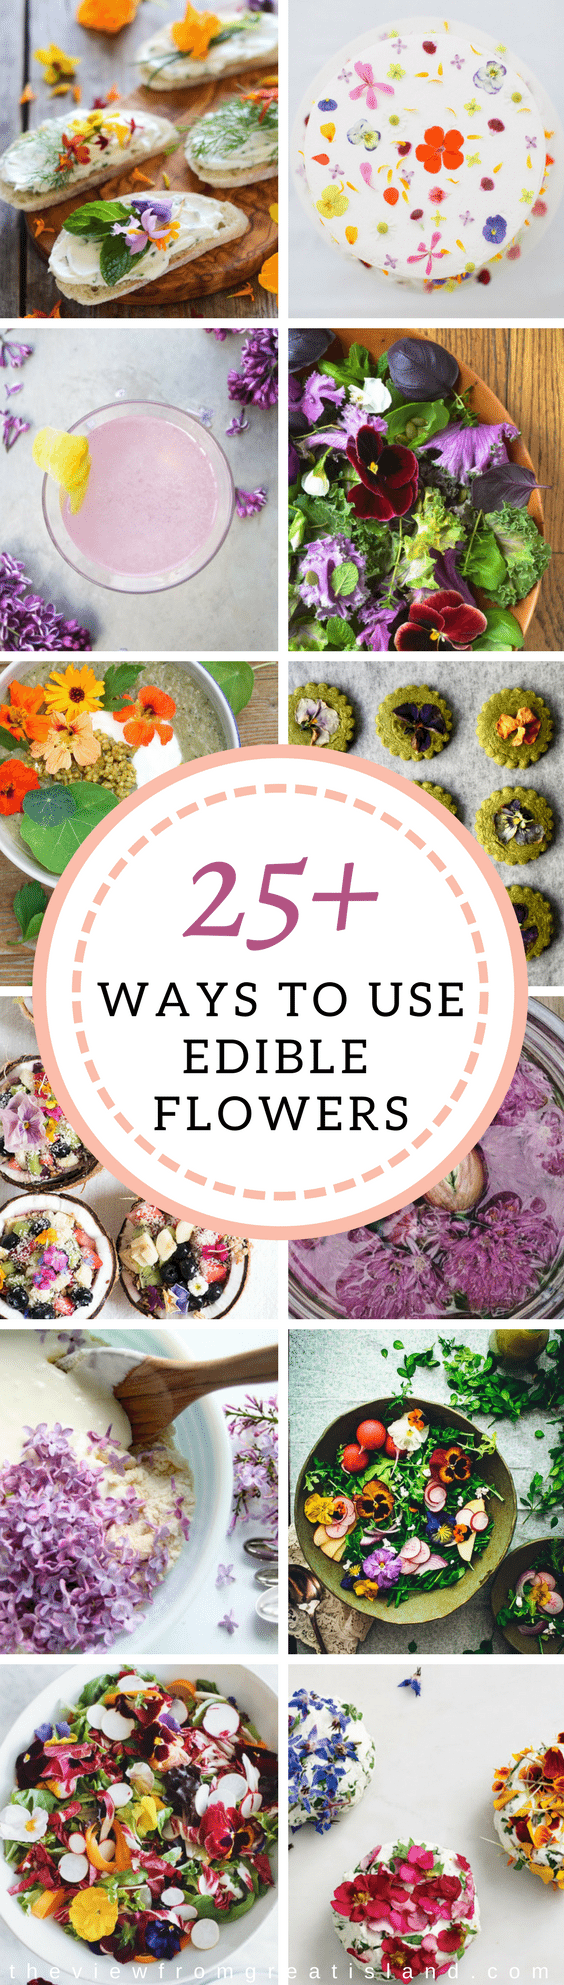 25+ Ways to Put Edible Flowers on the Table ~ flowers are one of the joys of spring time, and they're also back in vogue as garnishes and ingredients in all kinds of recipes.  #edibleflowers #flowers #spring #floral #cookingwithflowers #roses #lilac #violets #pansies #Easterrecipe #mothersdayrecipe #weddingshower #weddings